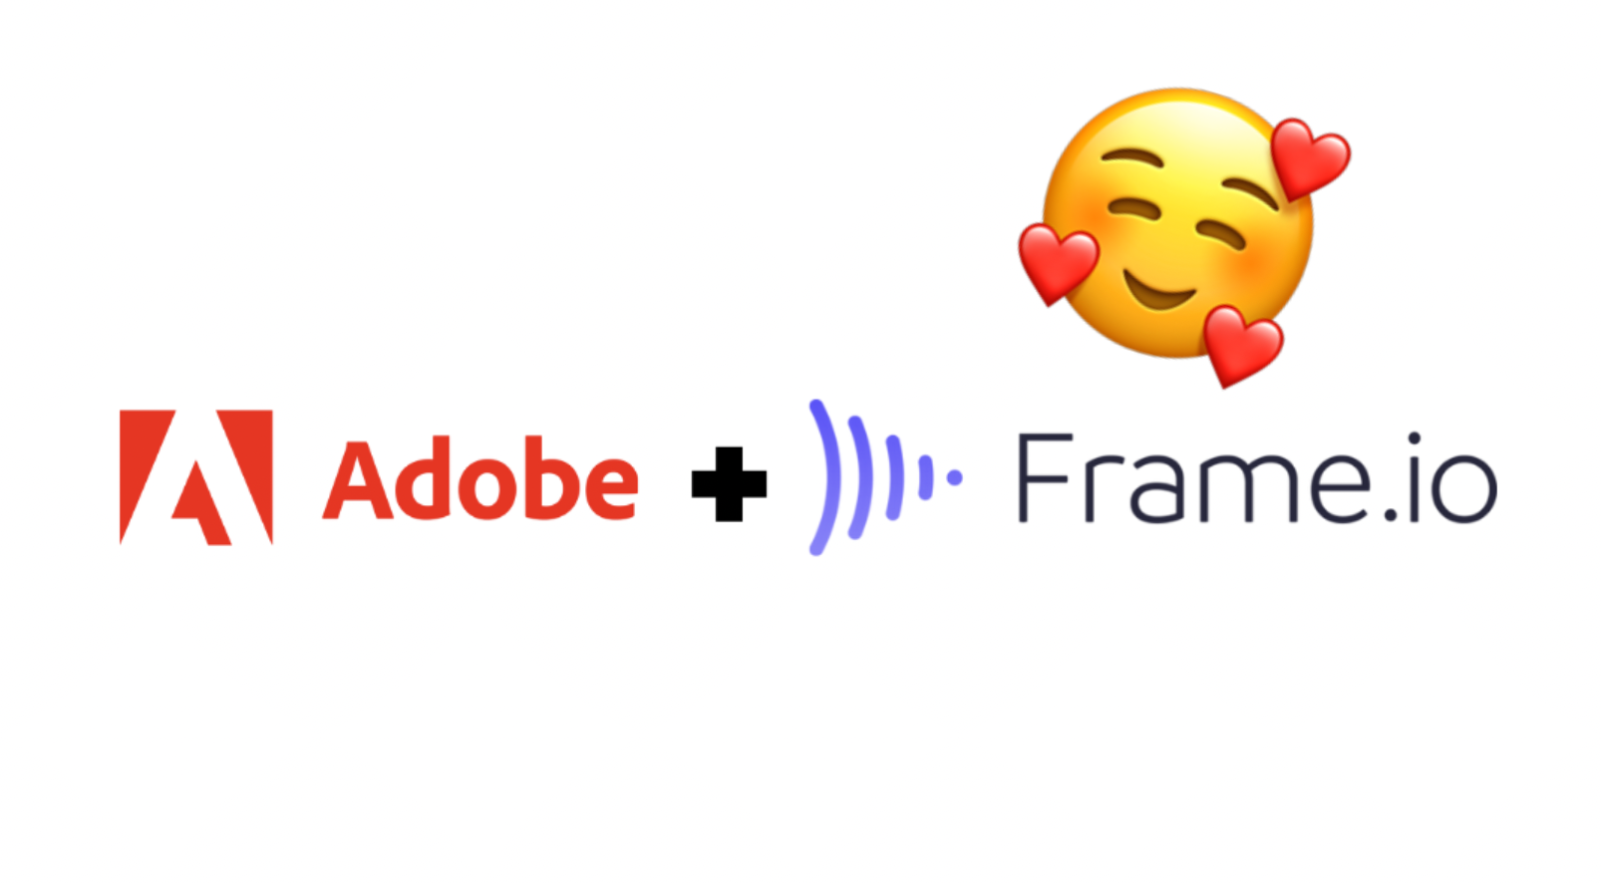 FrameIO and Adobe join forces